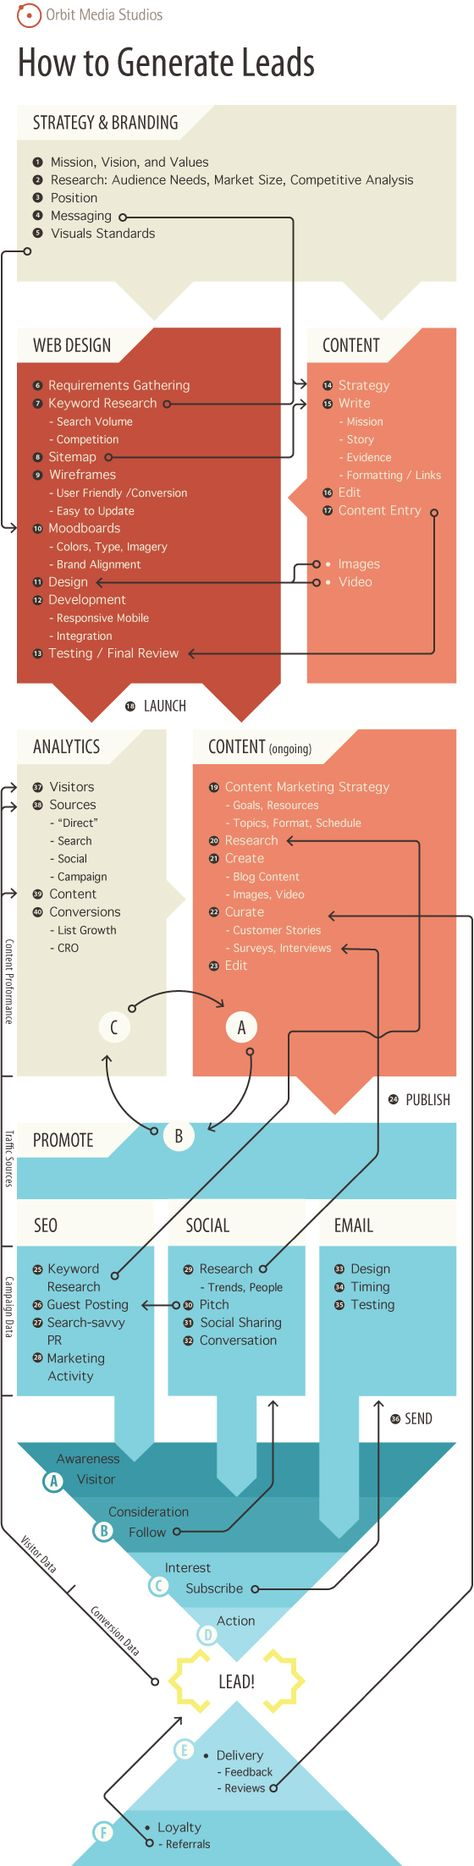 How to Generate Leads: 40 Effective Tips for Lead Generation